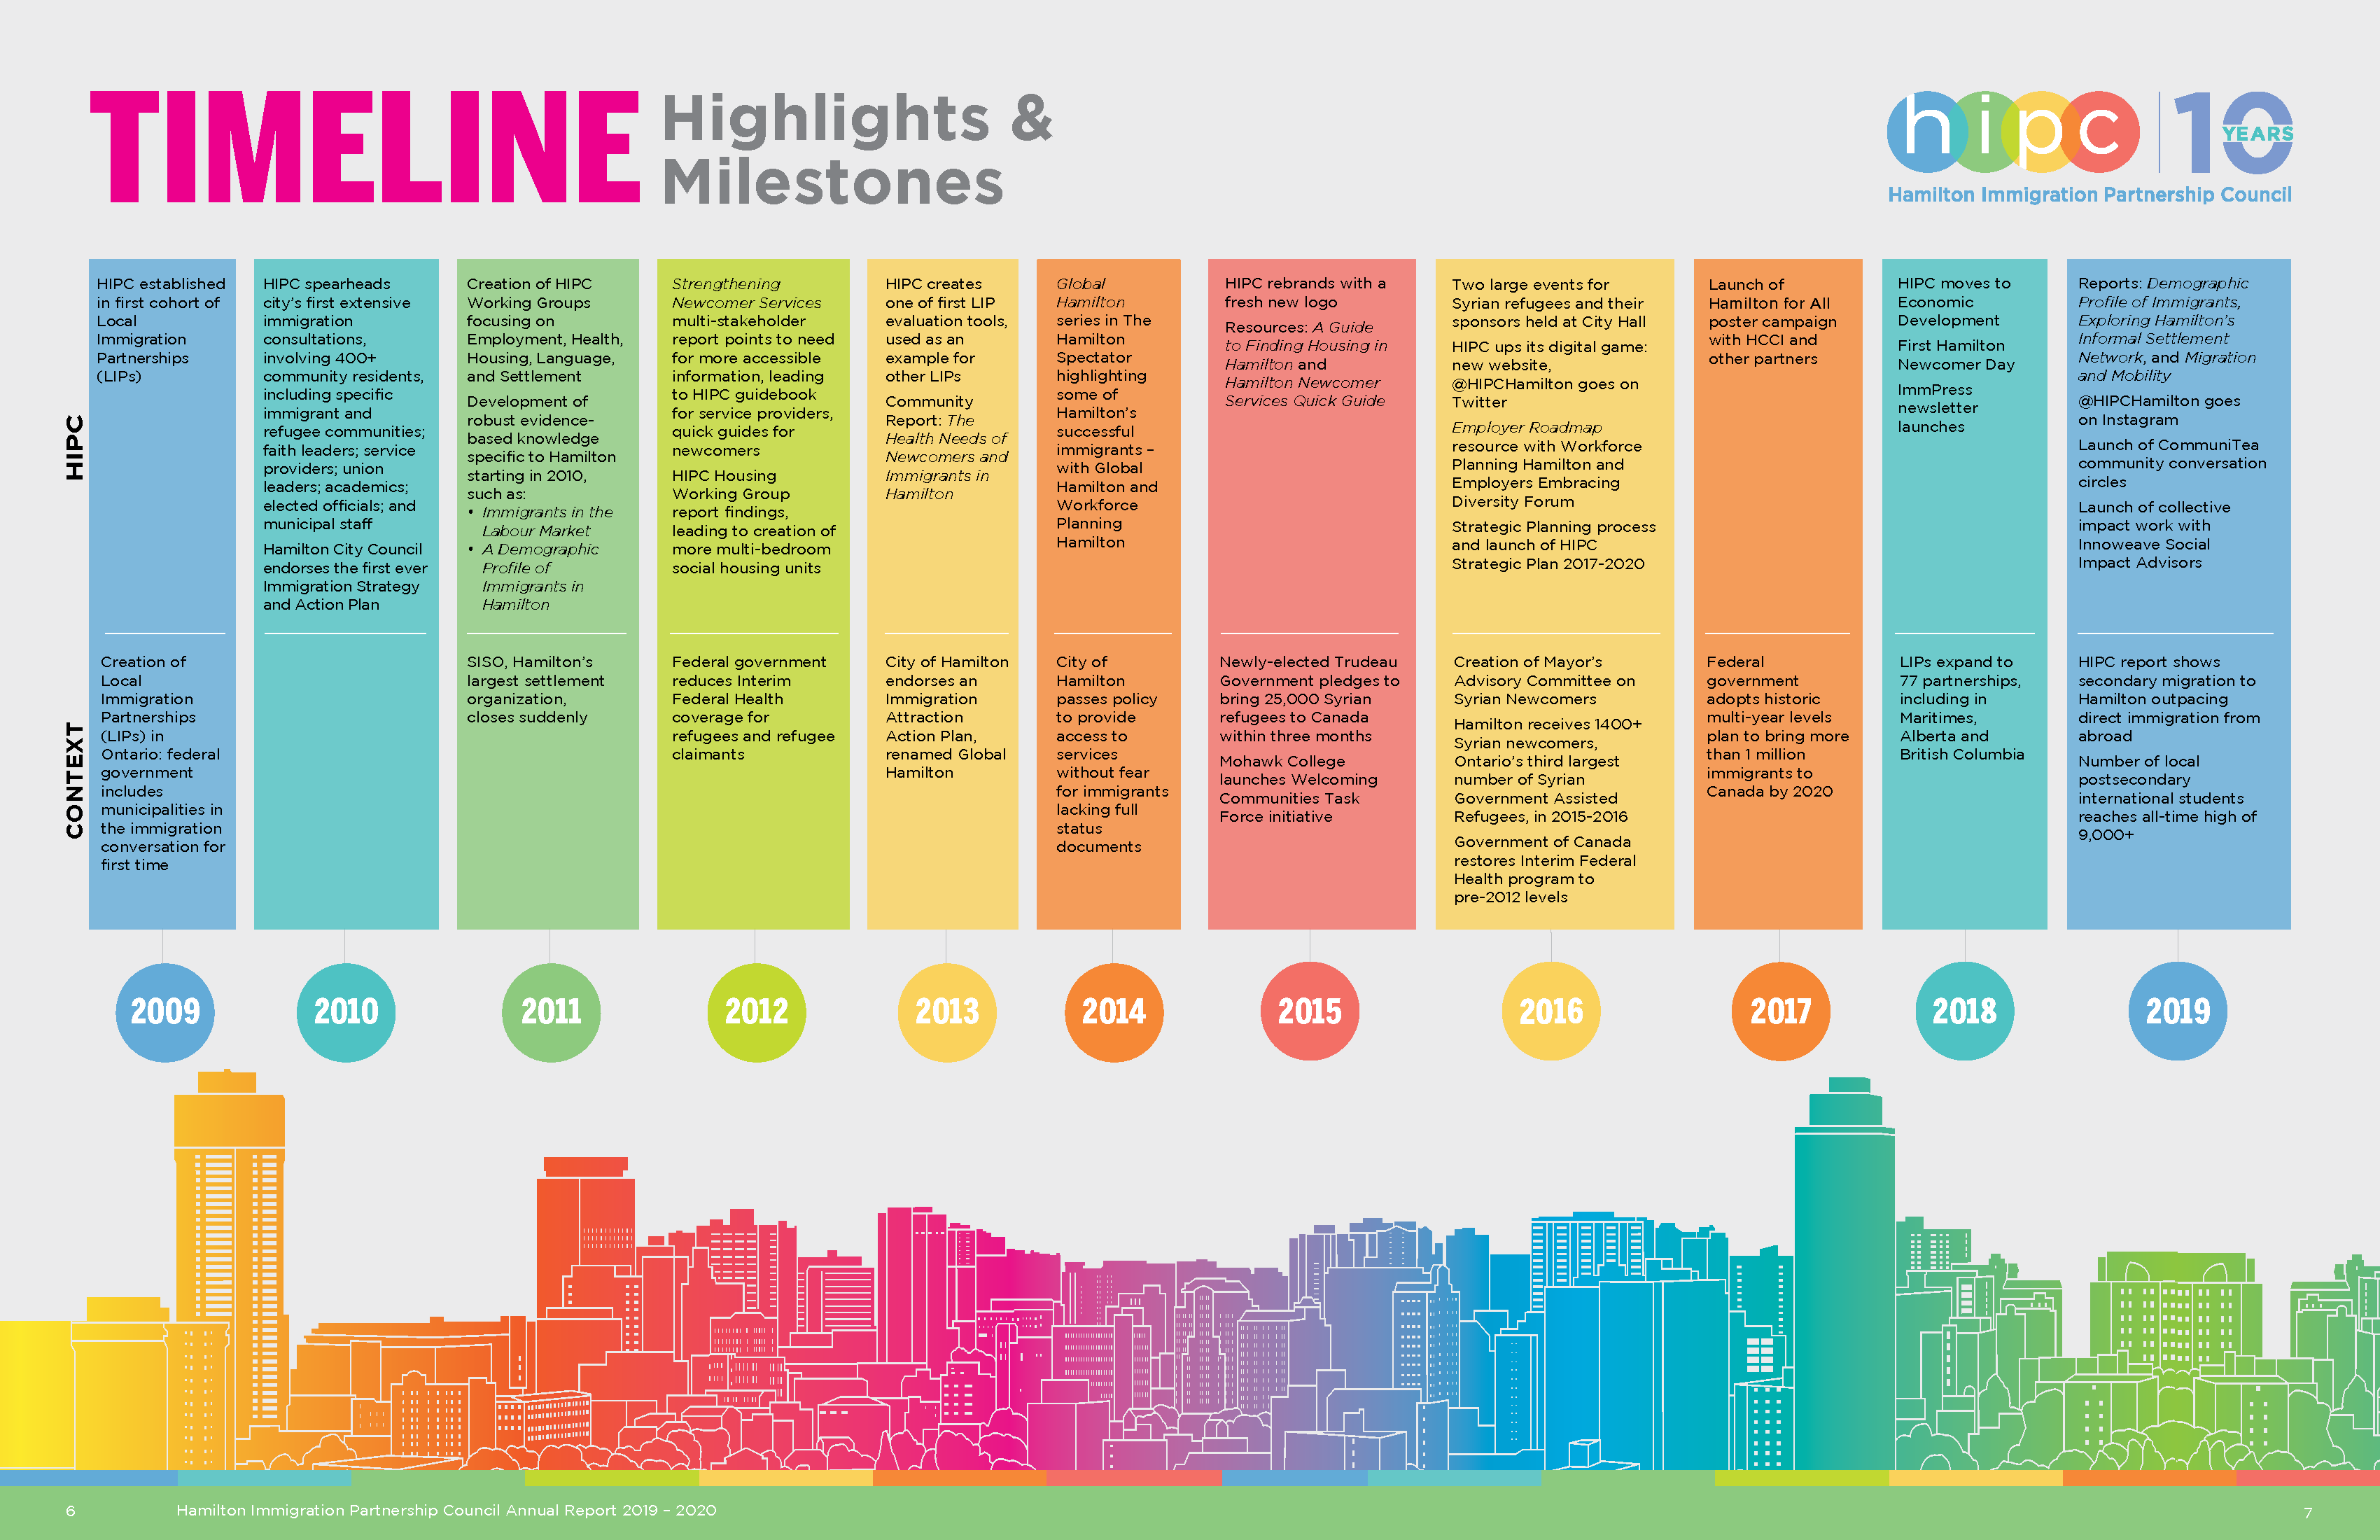 A visual representation of HIPC's timeline that appears in the annual report